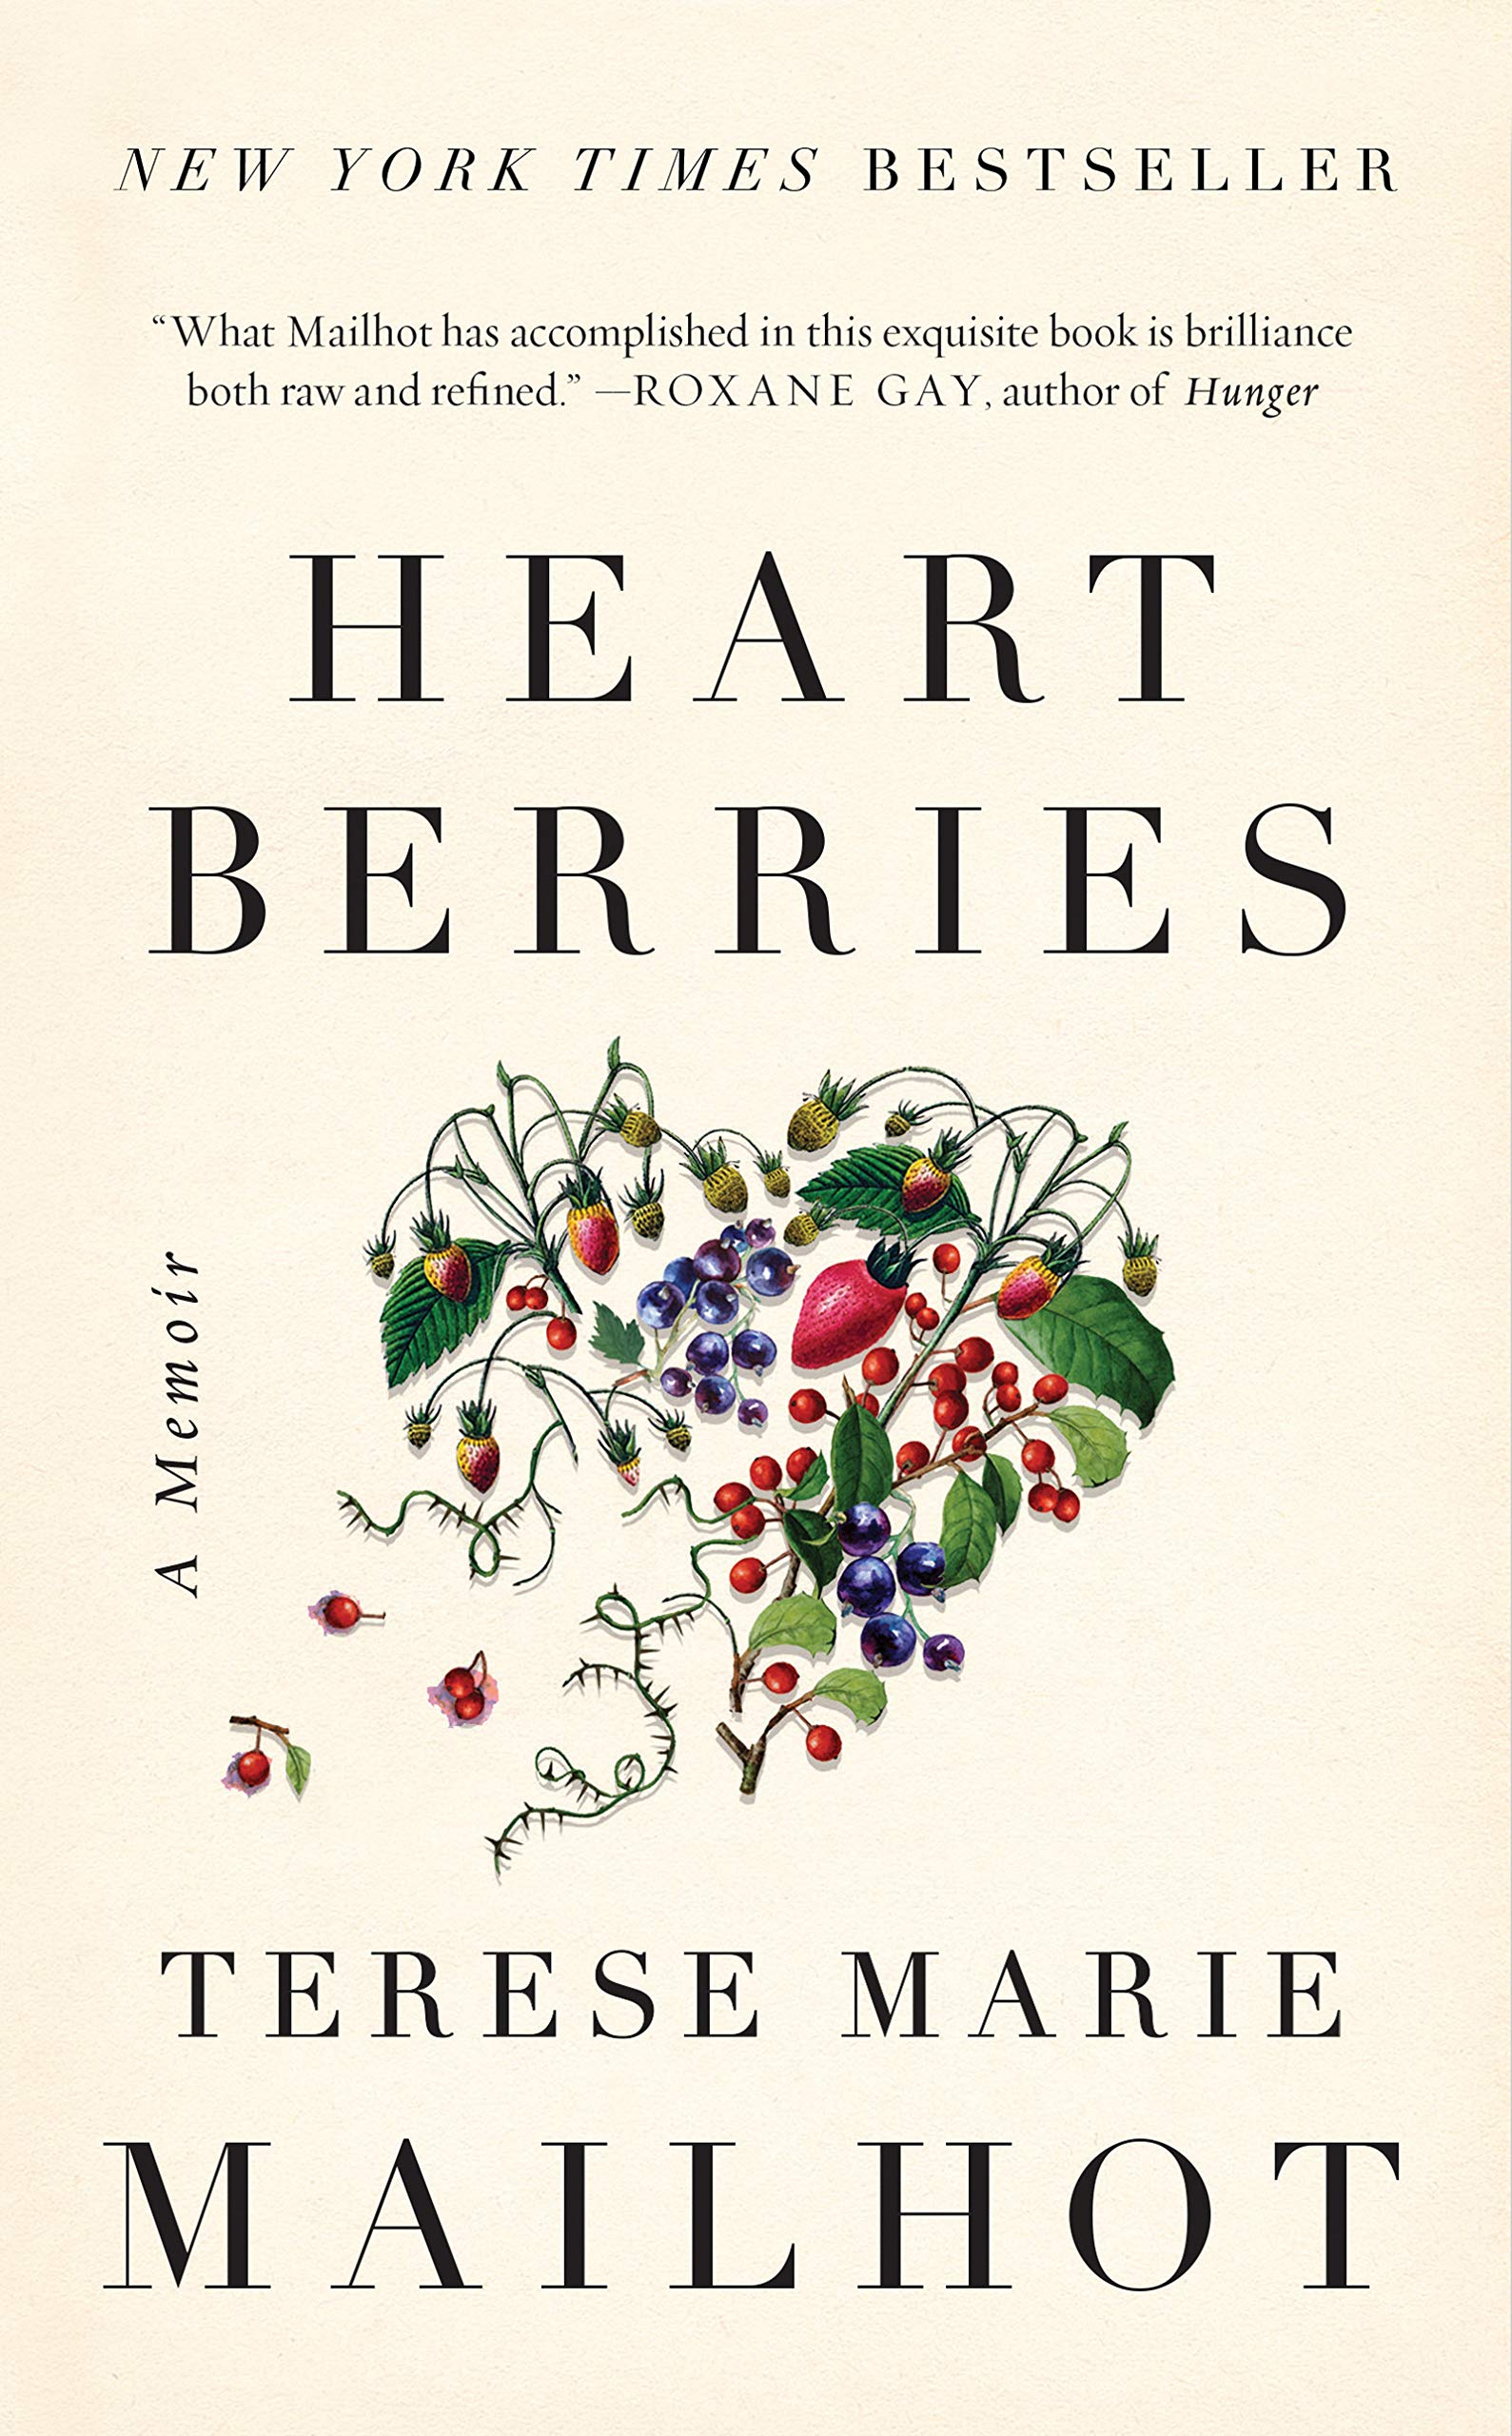 The digital cover of the book Heart Berries features a heart made out of berries.